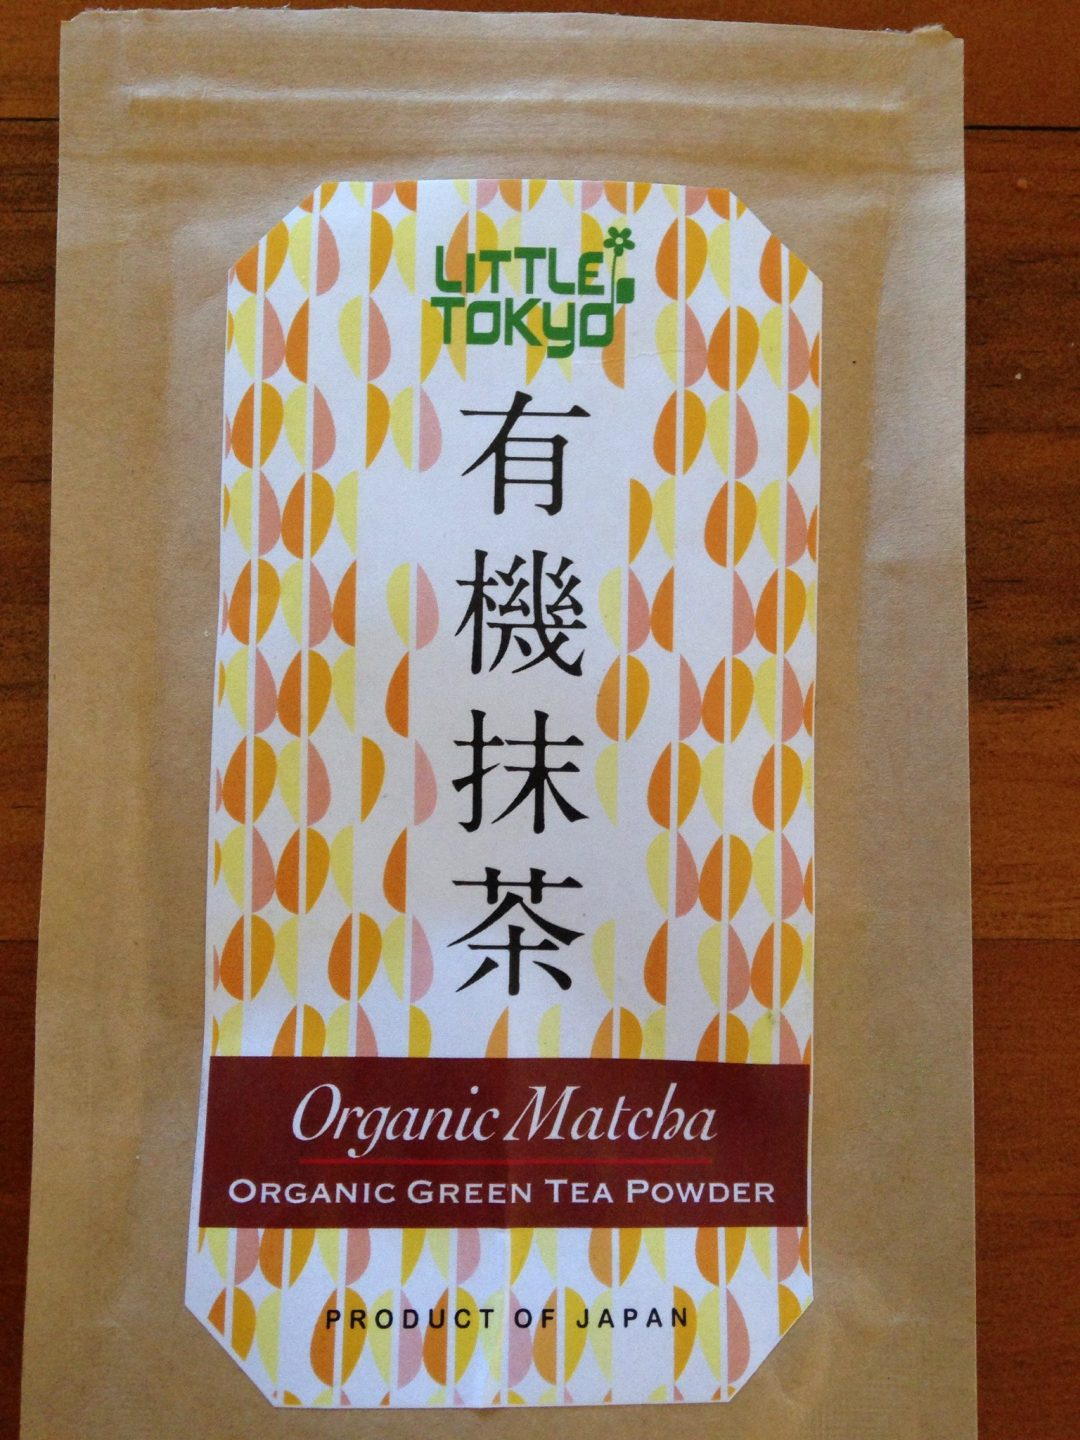 Organic matcha from Little Tokyo image